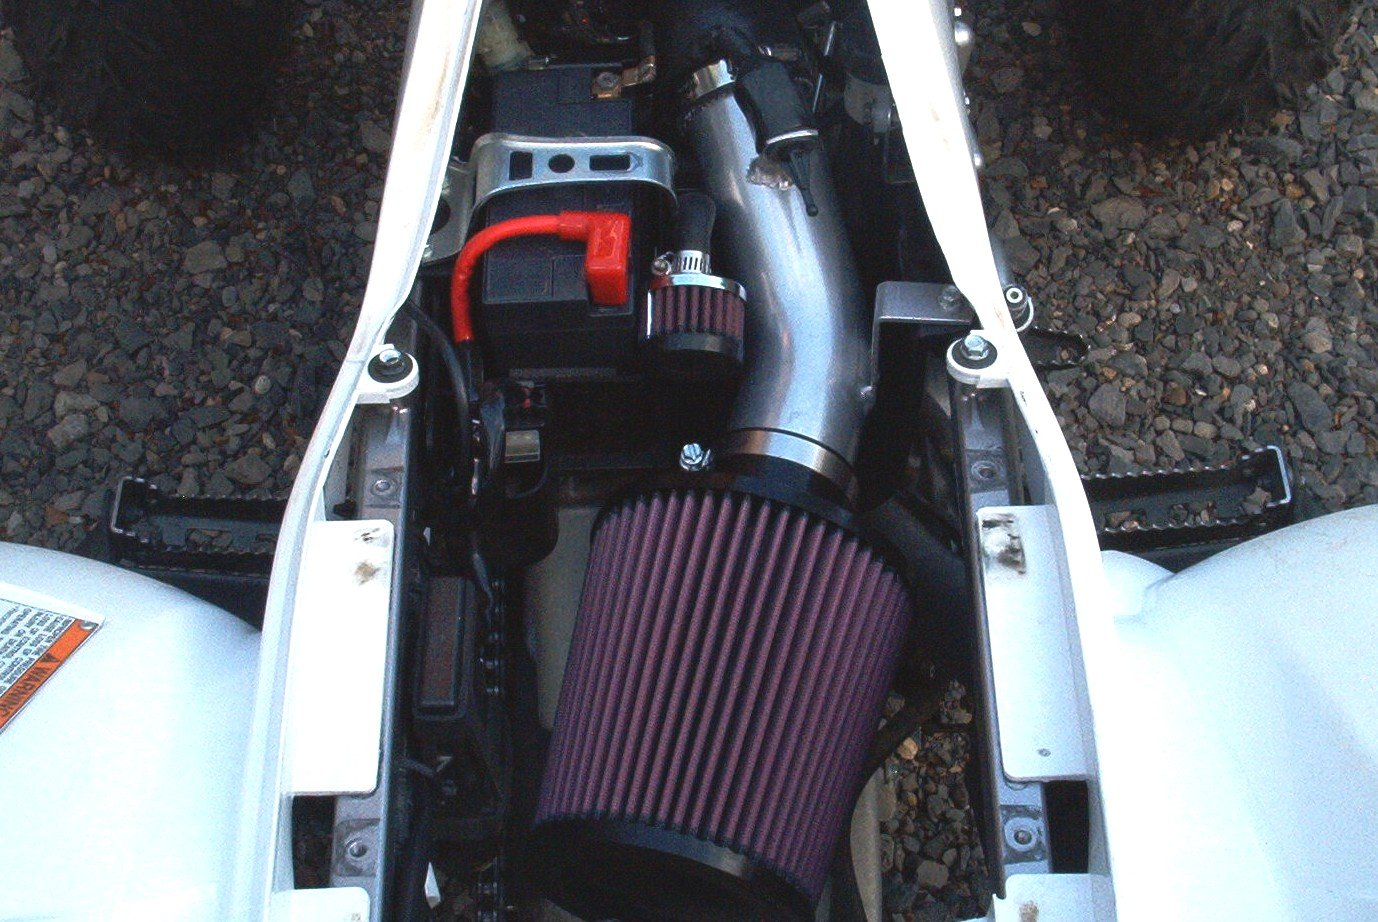 Malone Motorsports VelI-700r-1L Raptor 700 Velocity Intake System with Large K&N Filter by Velocity Intake Systems (Image #3)